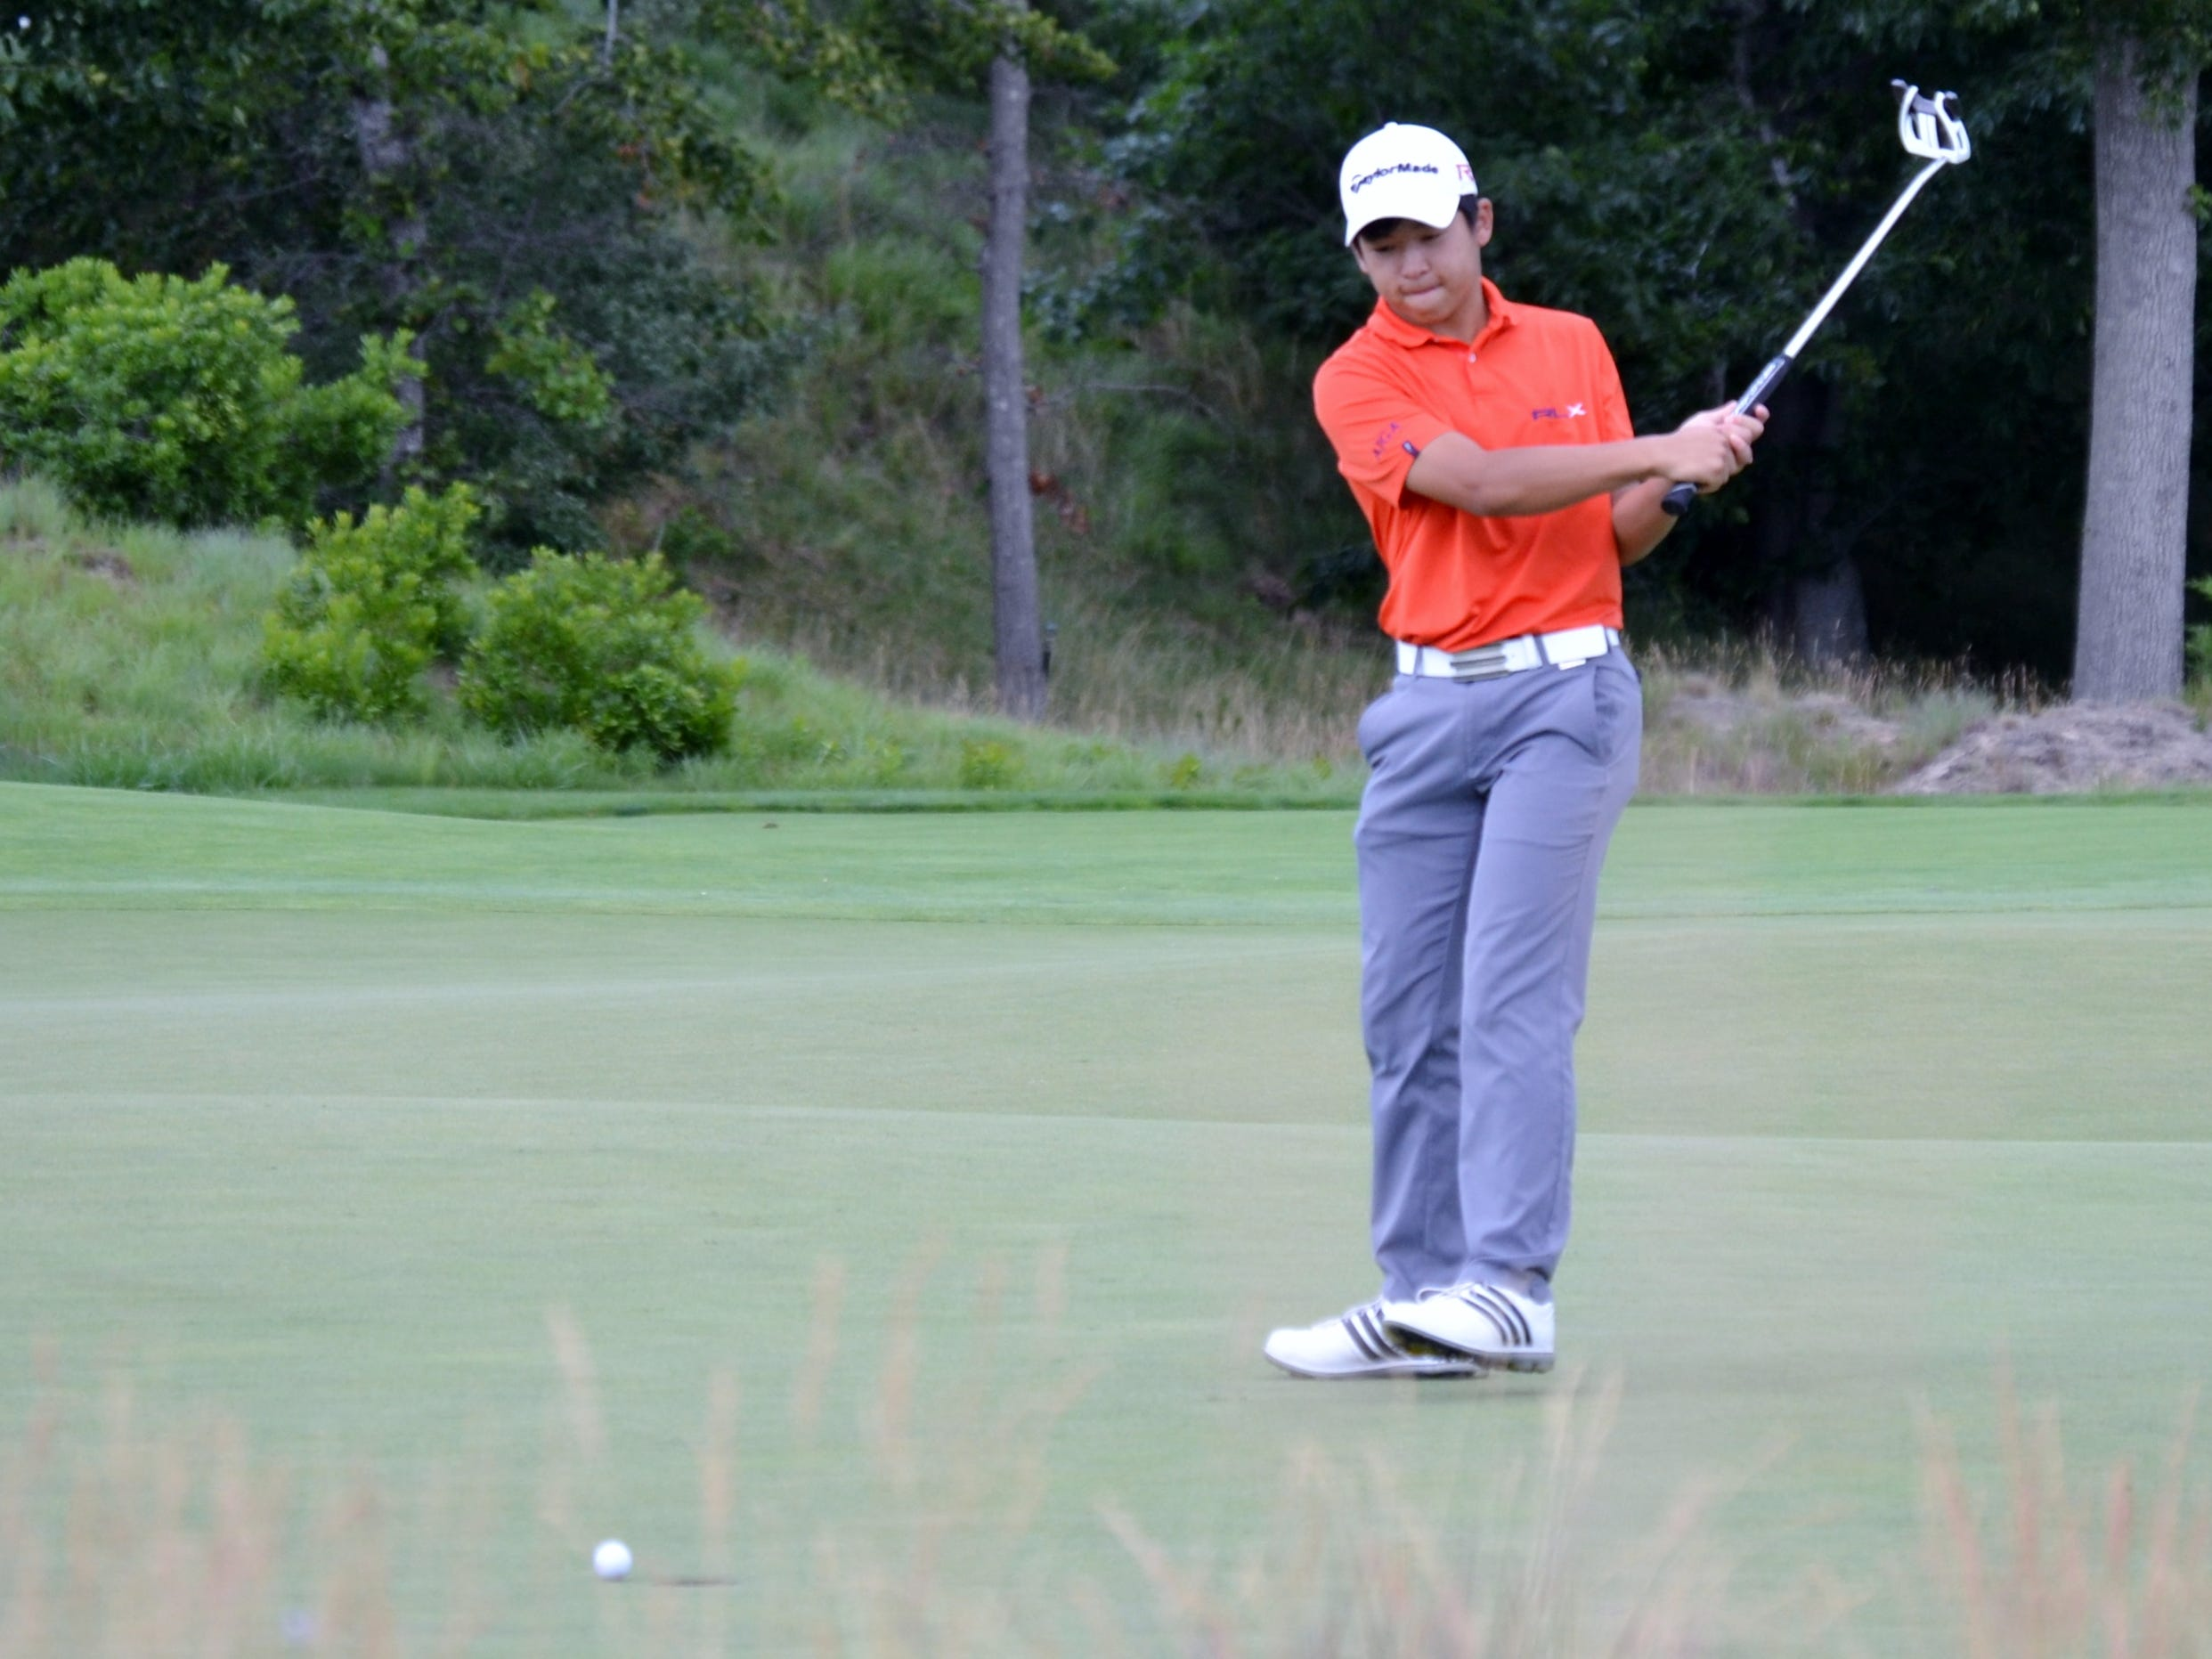 Brent Ito reacts to a missed birdie putt on the ninth hole at Friar's Head Golf Club Monday during the first round of The Ike Championship. The senior at Ardsley High School opened with a 1-under 70 and is tied for fifth. (Photo: Mike Dougherty/The Journal News)